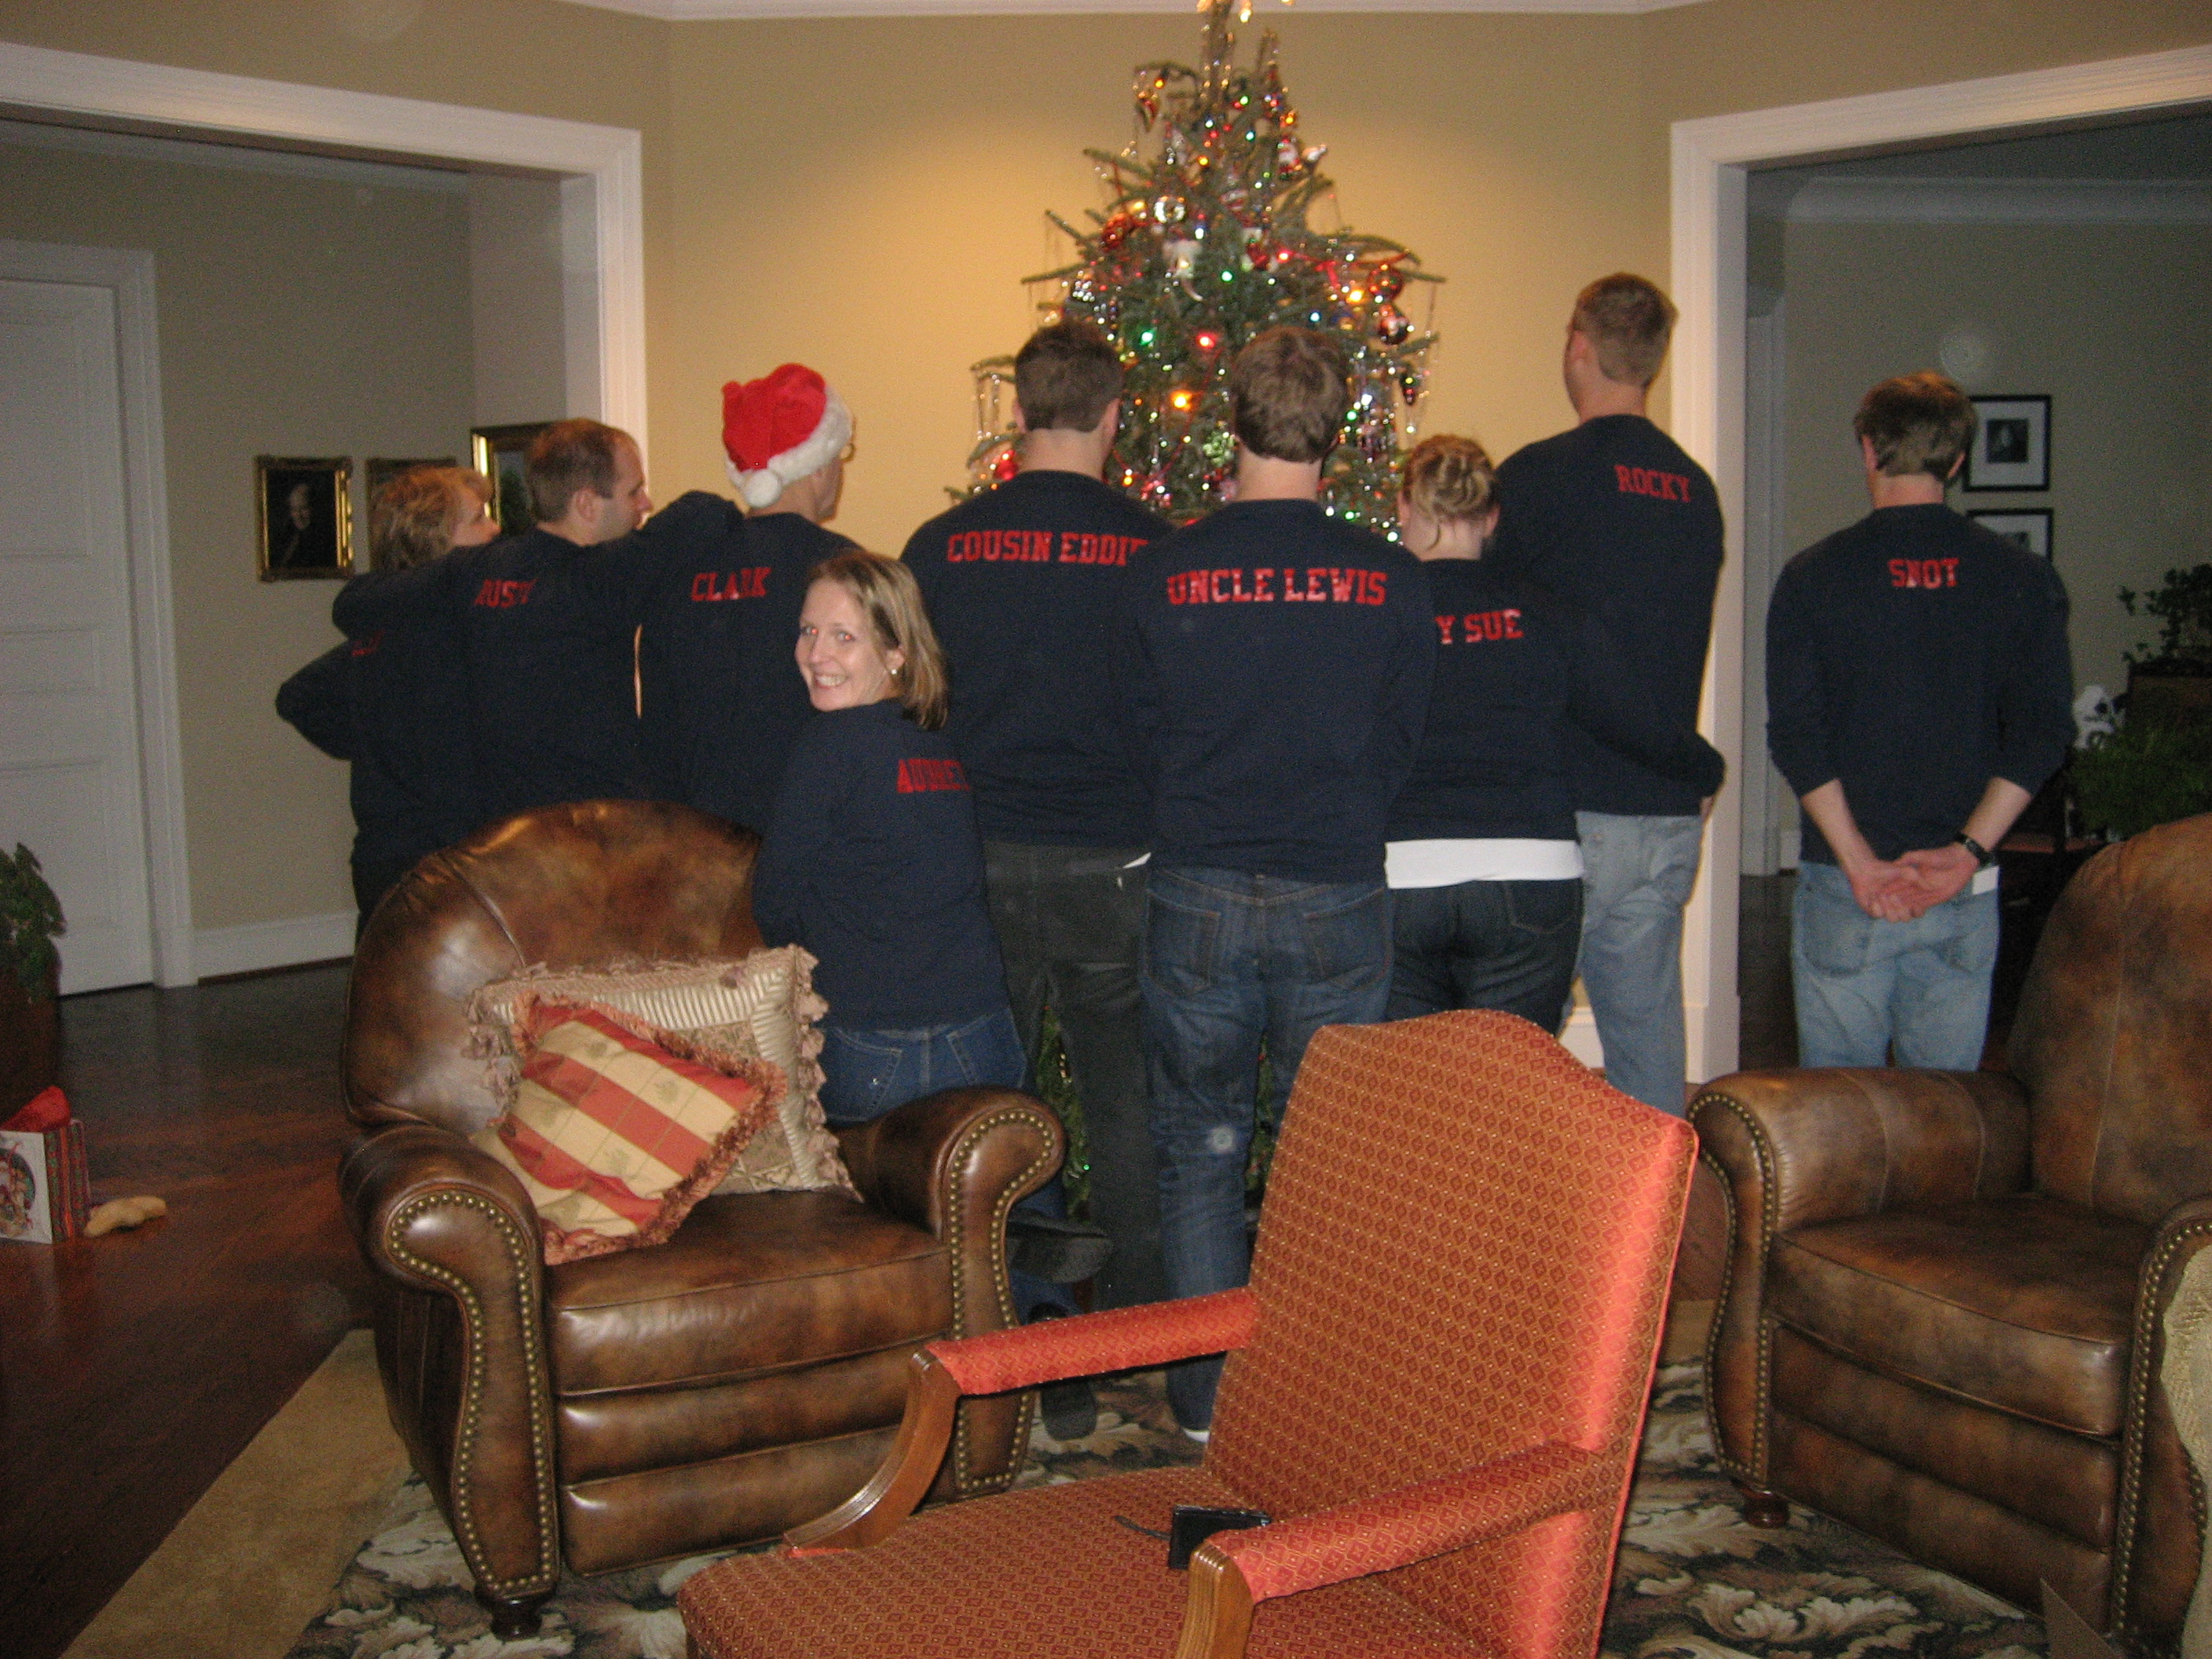 gris wallaces christmas vacation 2010 t shirt photo